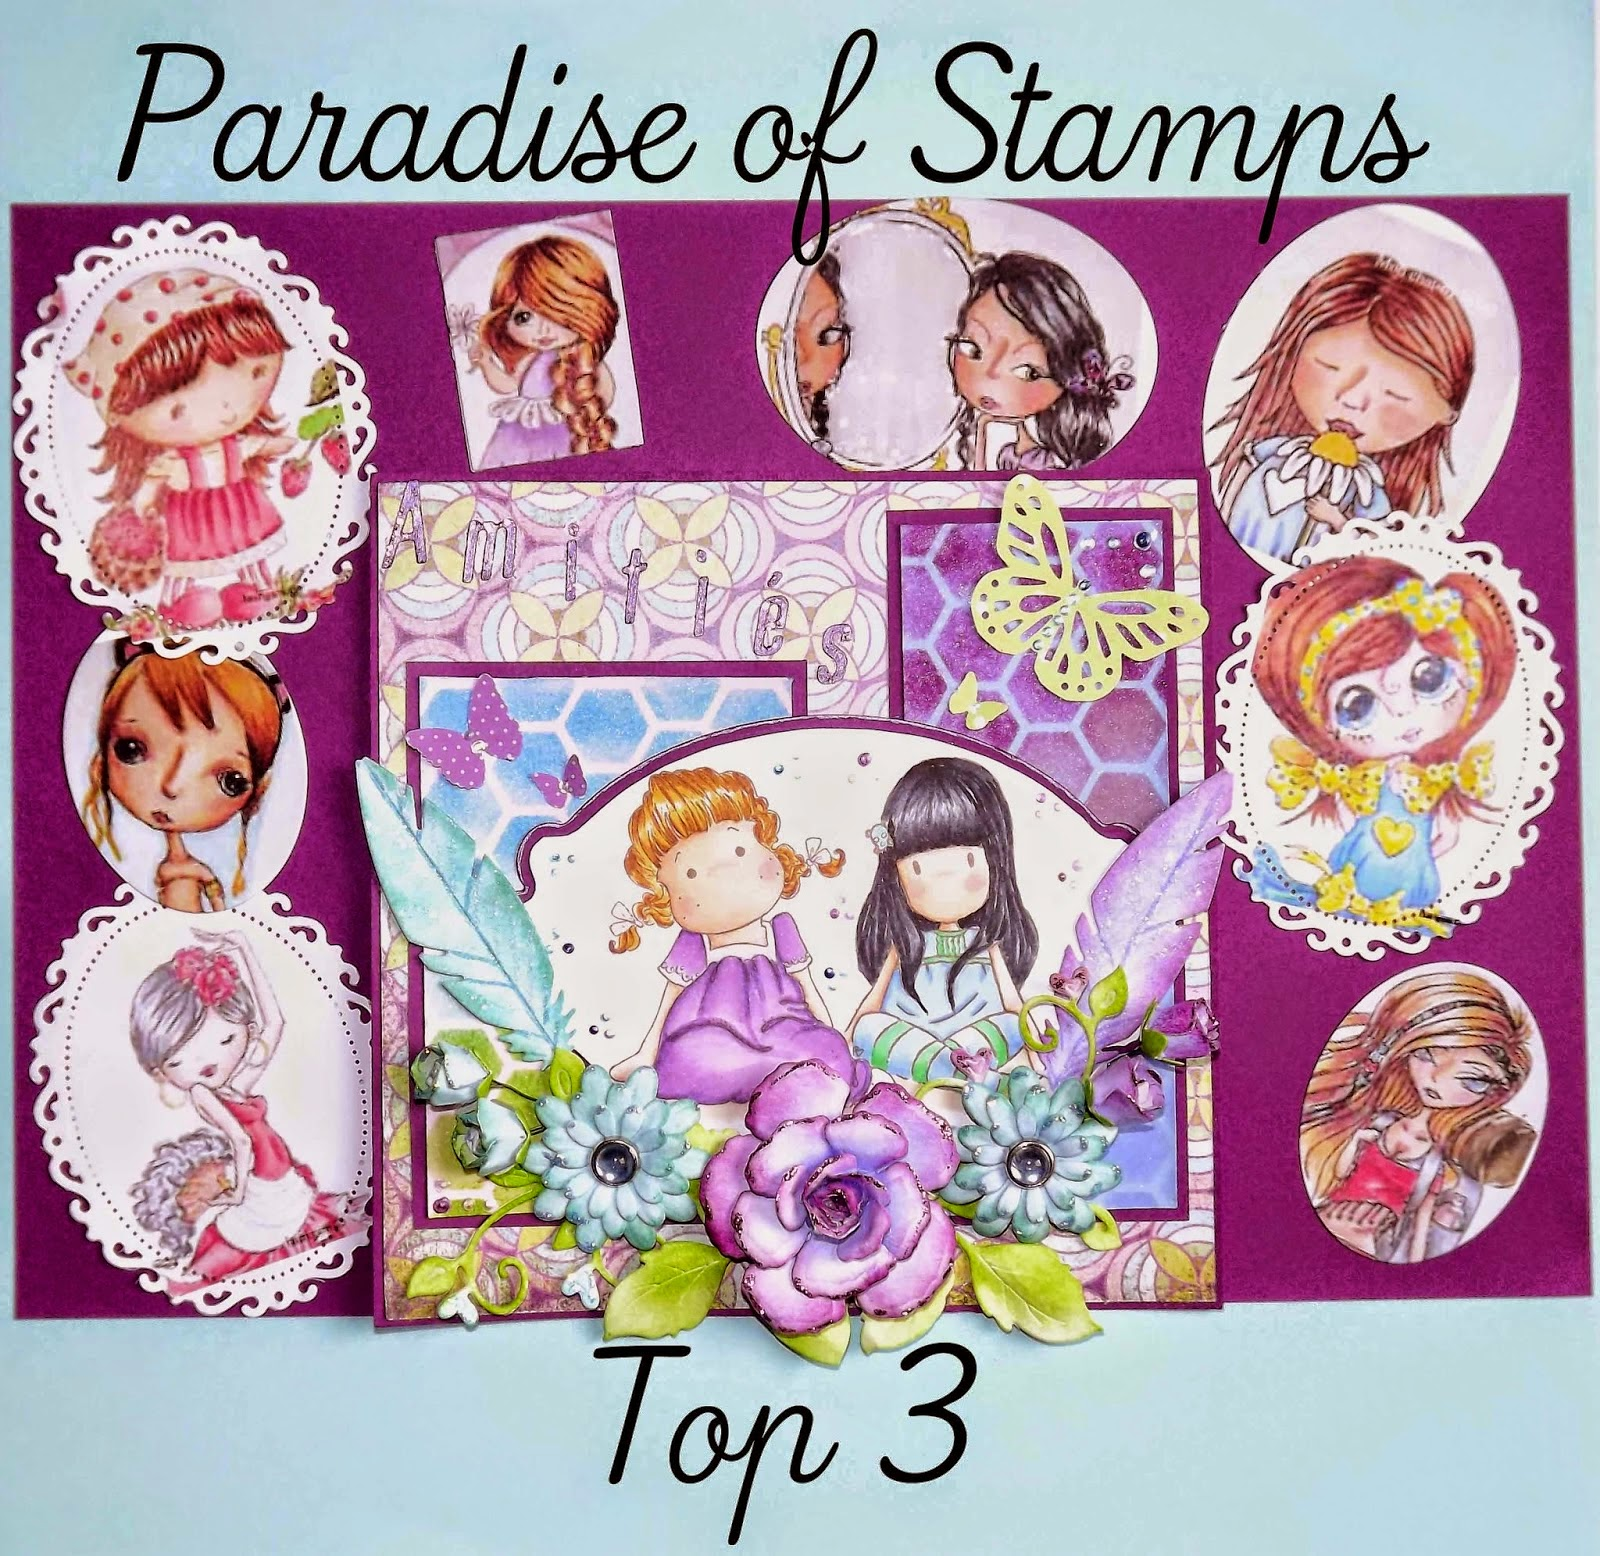 Top 3 @ Paradise of Stamps 18th Jan'